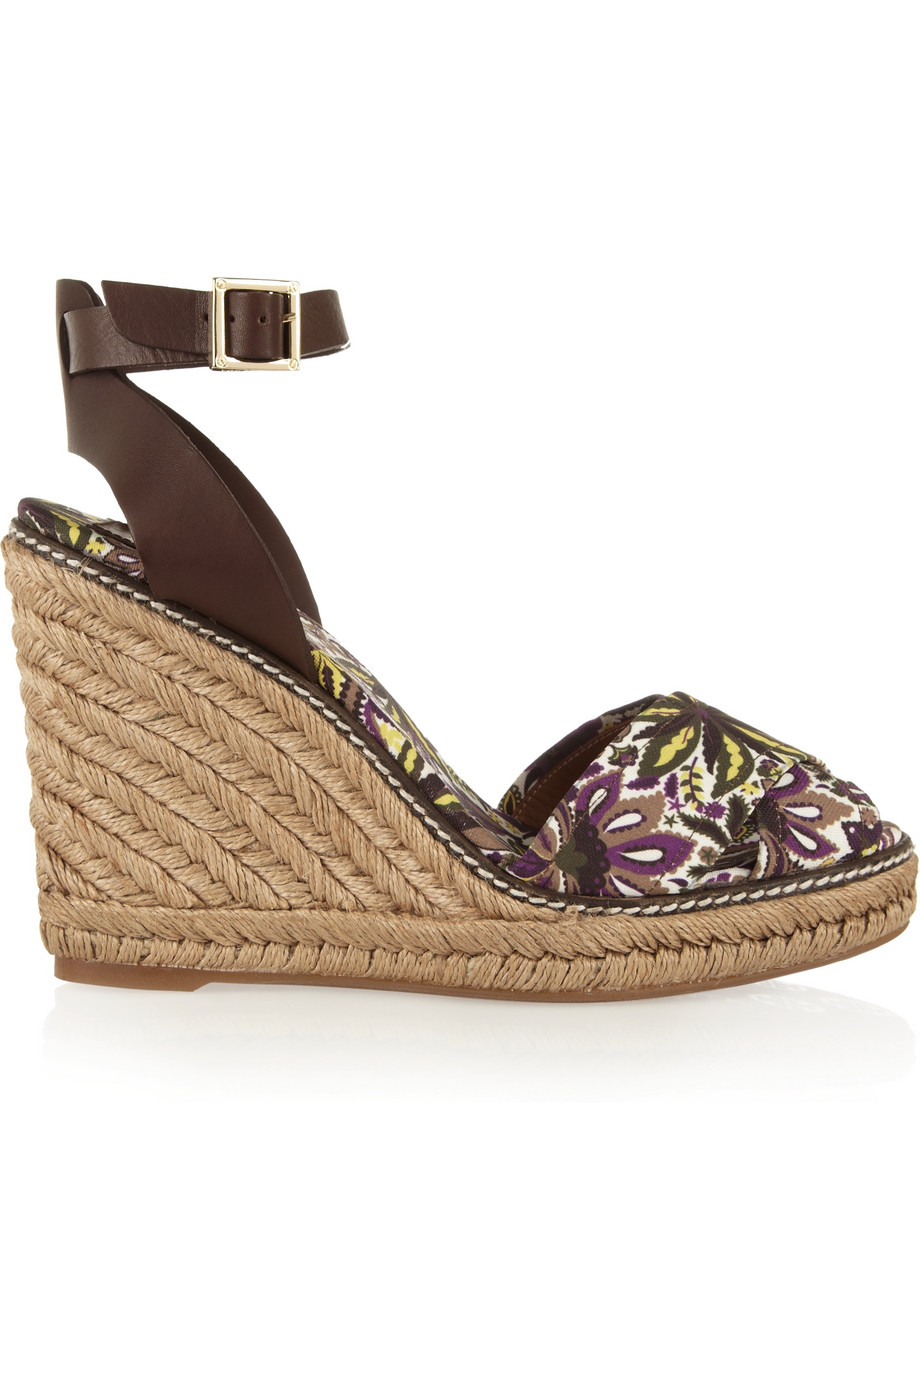 145cdb54ba8 Lyst - Tory Burch Printed Canvas and Leather Espadrille Wedge Sandals in  Brown